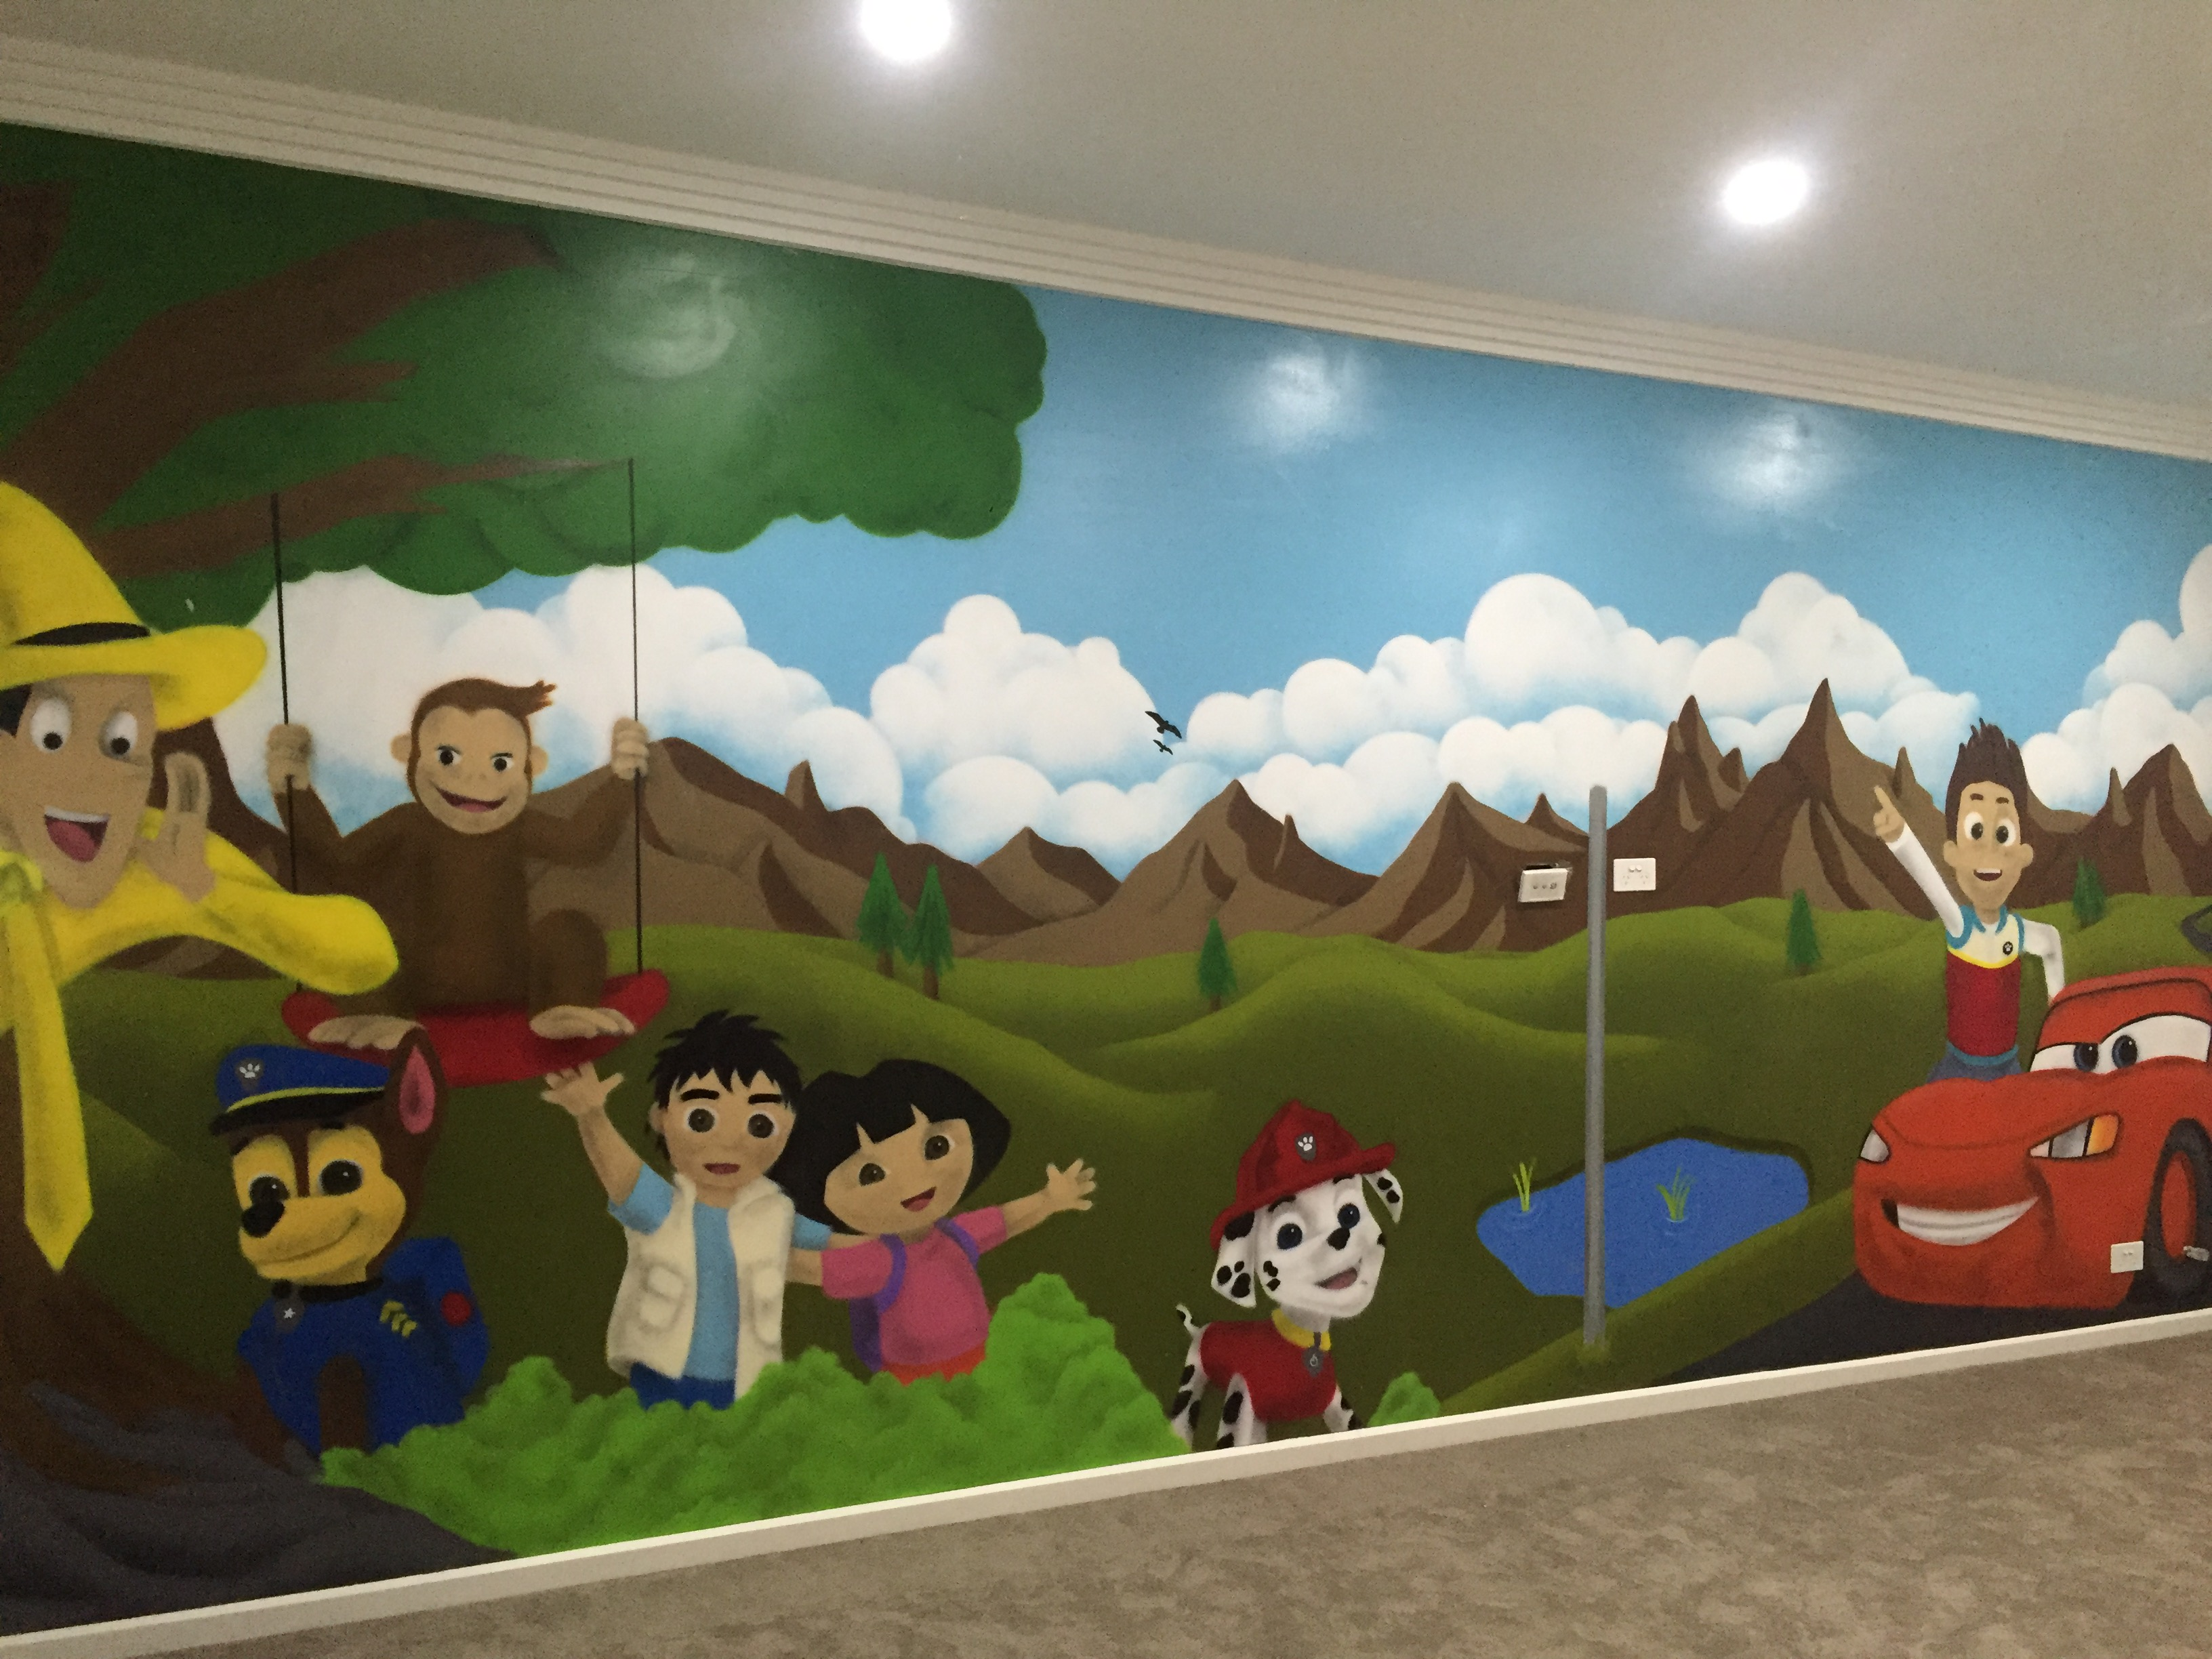 Kids playroom mural artwork